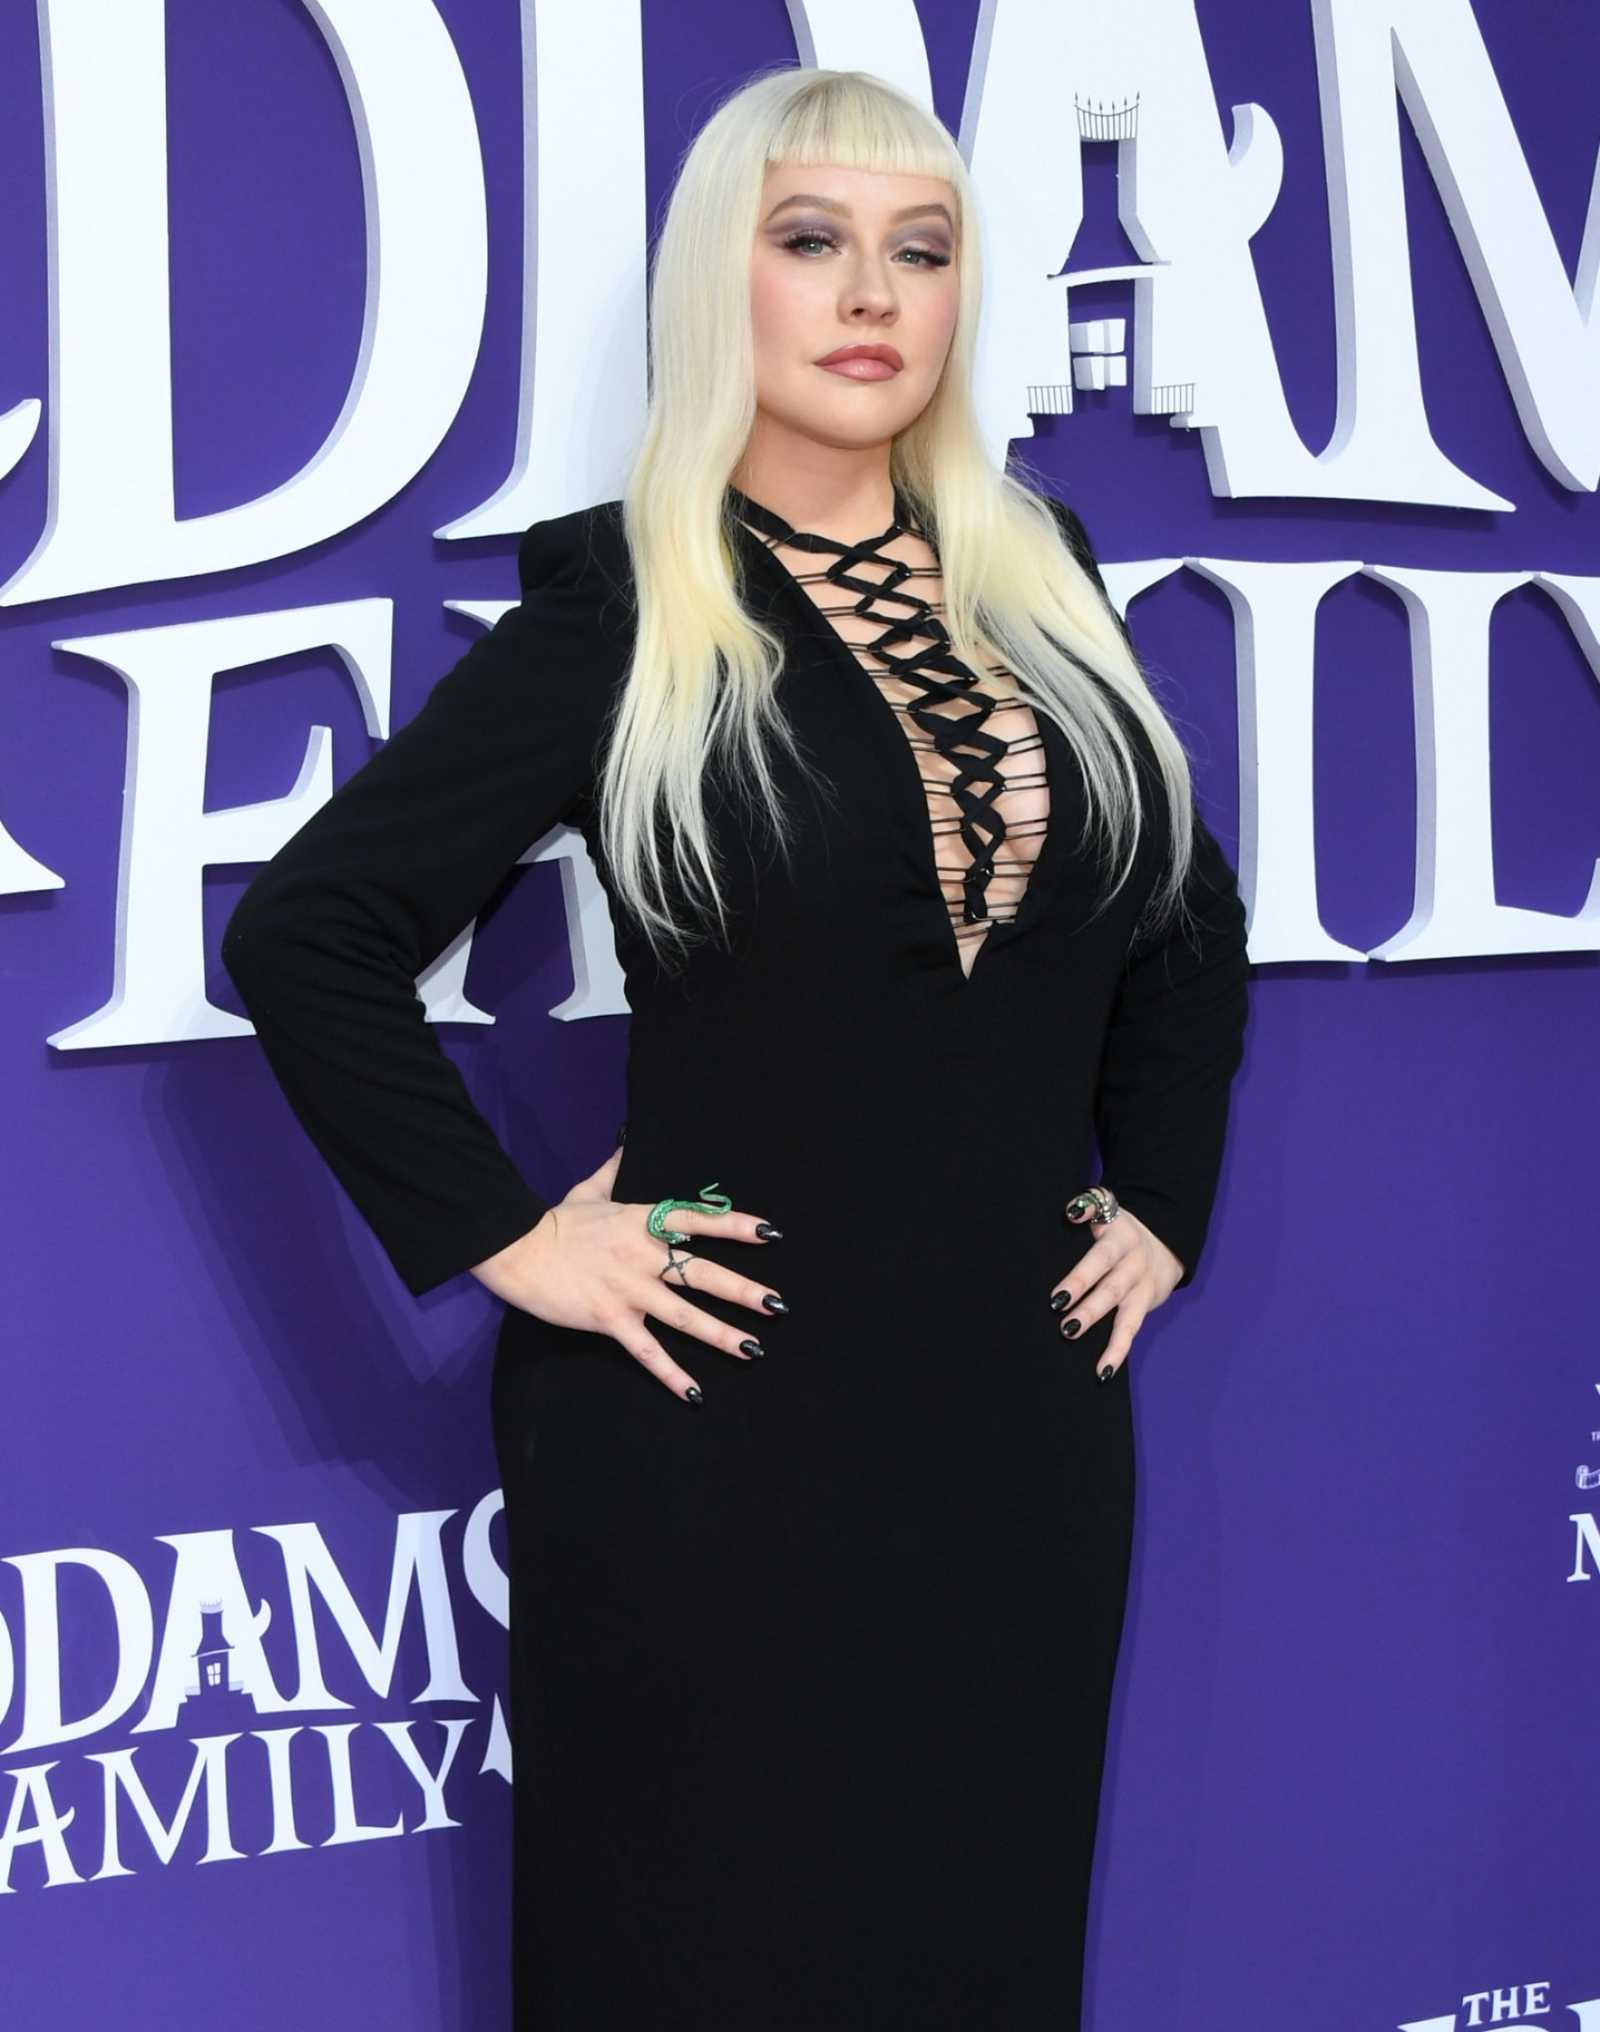 Christina_Aguilera_-_The_Addams_Family_Premiere__in_Los_Angeles_-_October_062C_2019-39.jpg